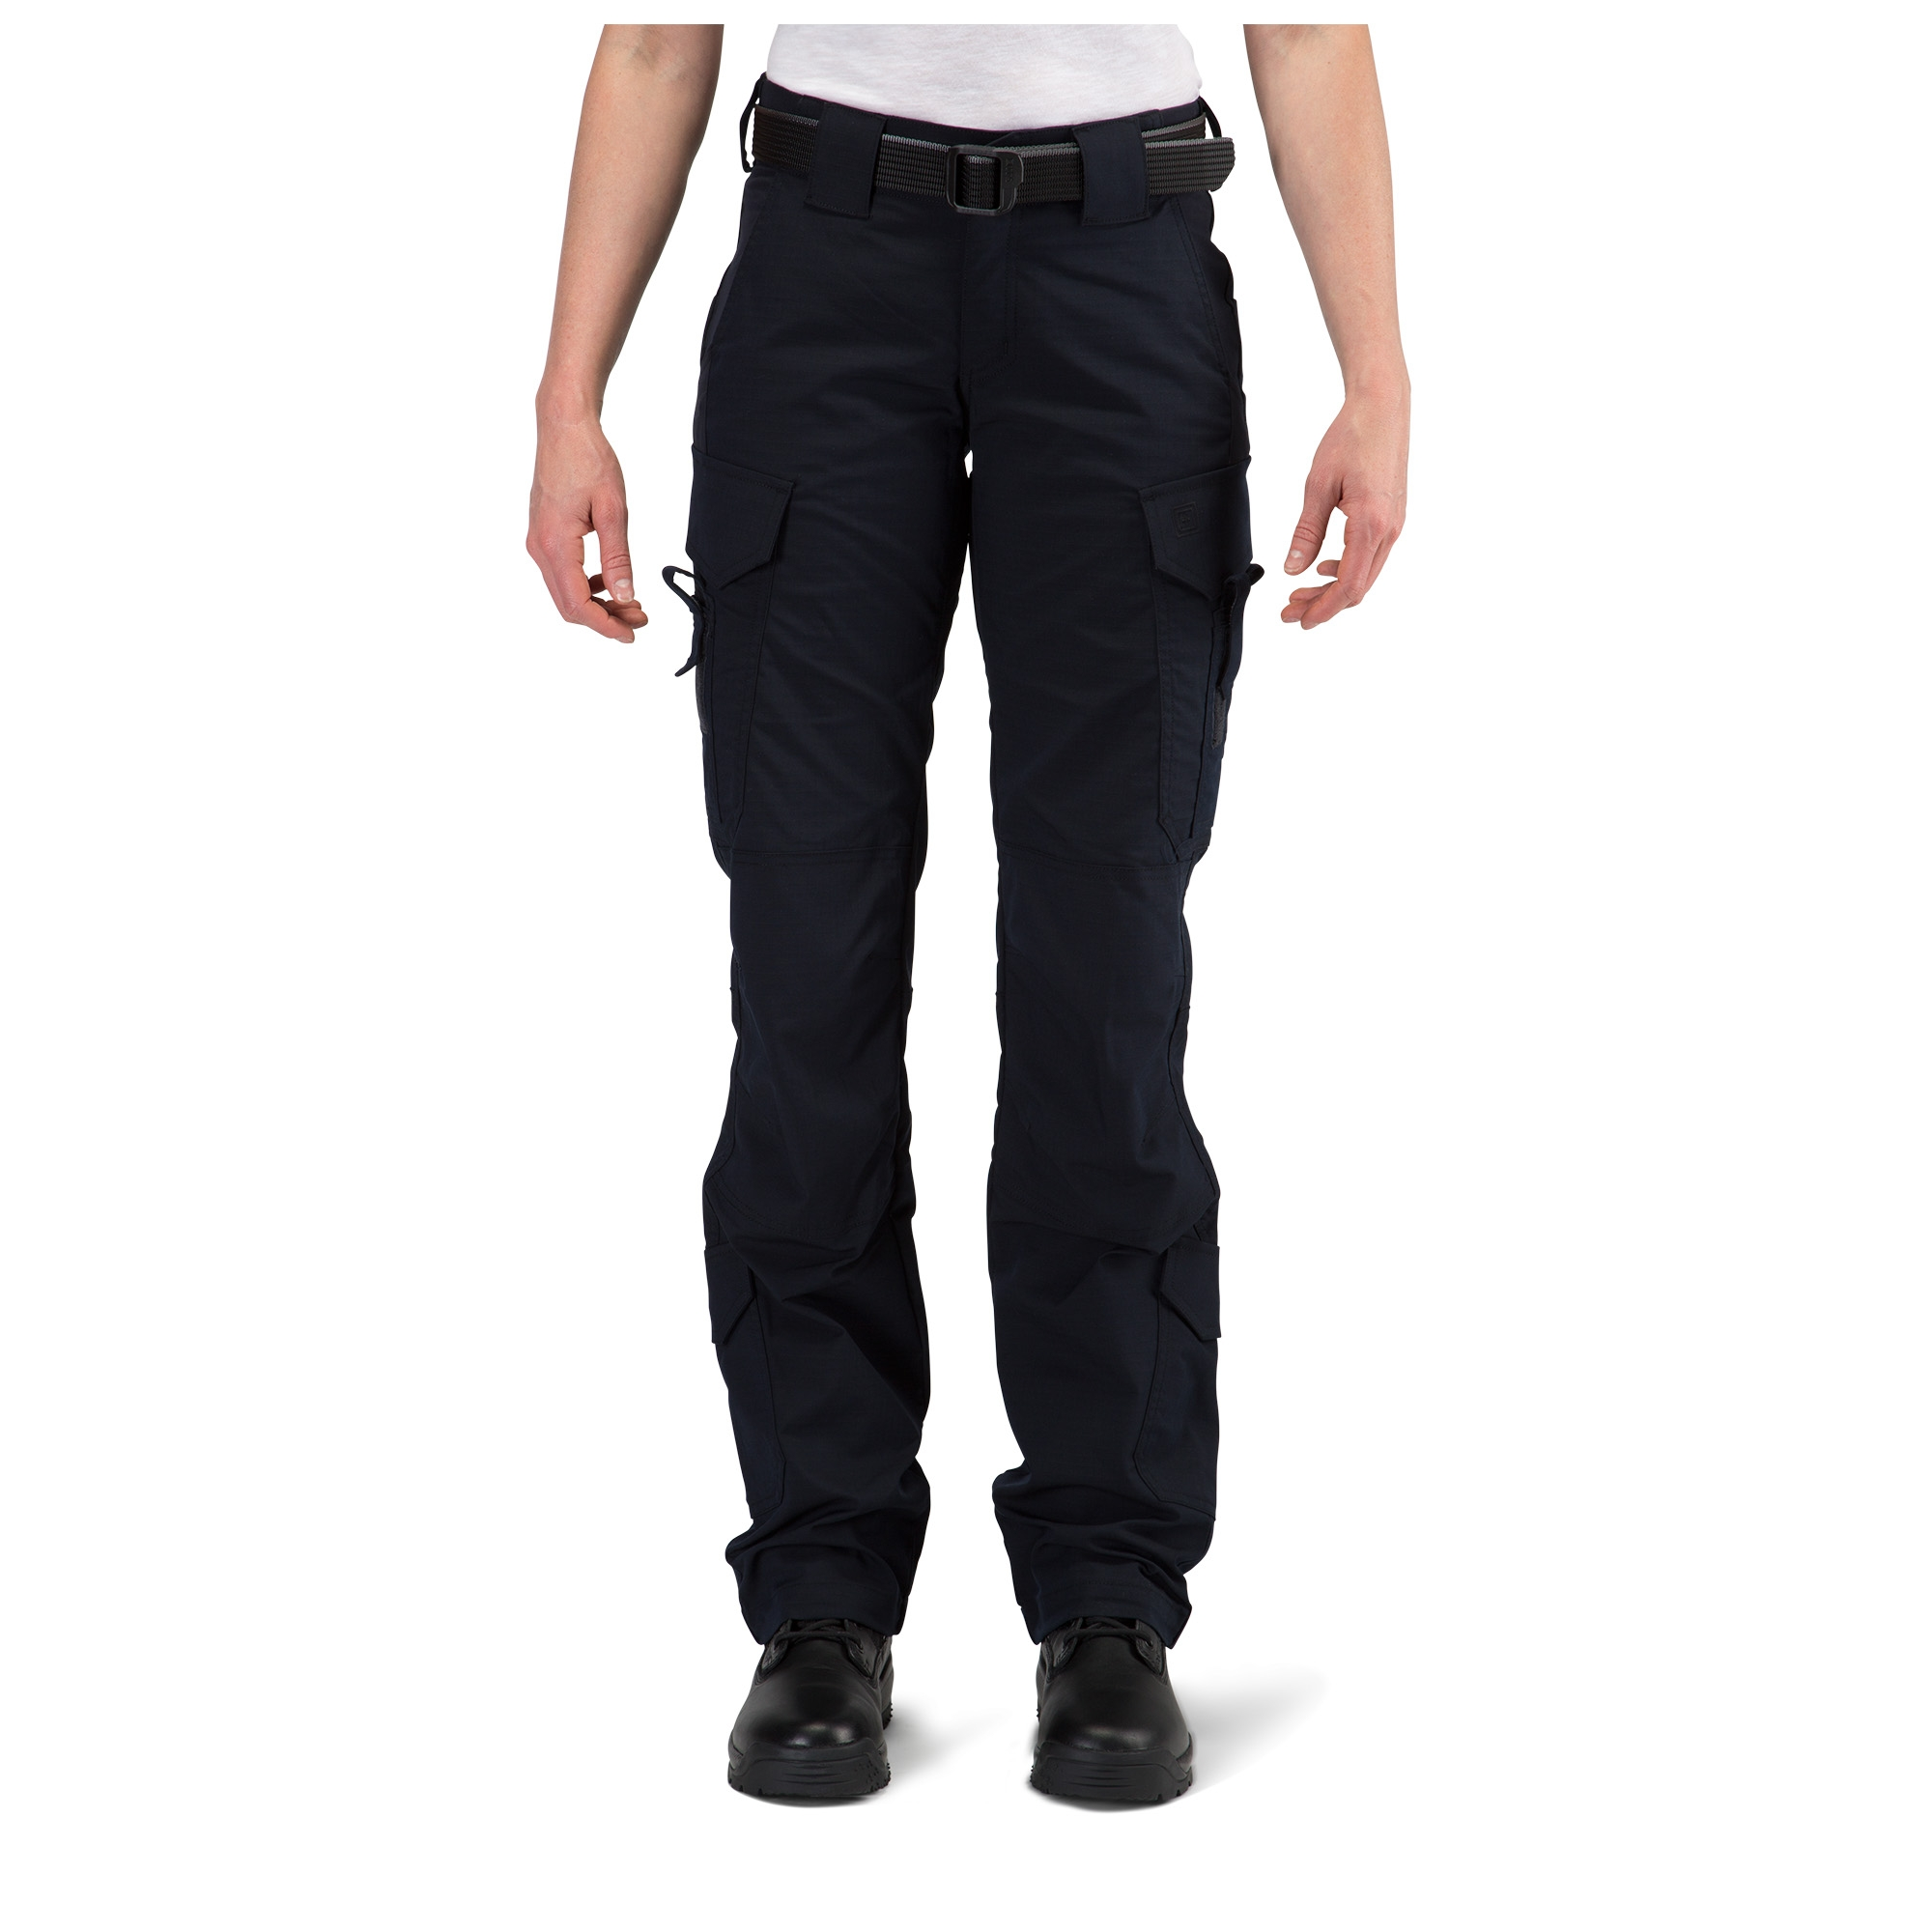 Women's 5.11 Stryke Women's EMS Pant from 5.11 Tactical (Blue)